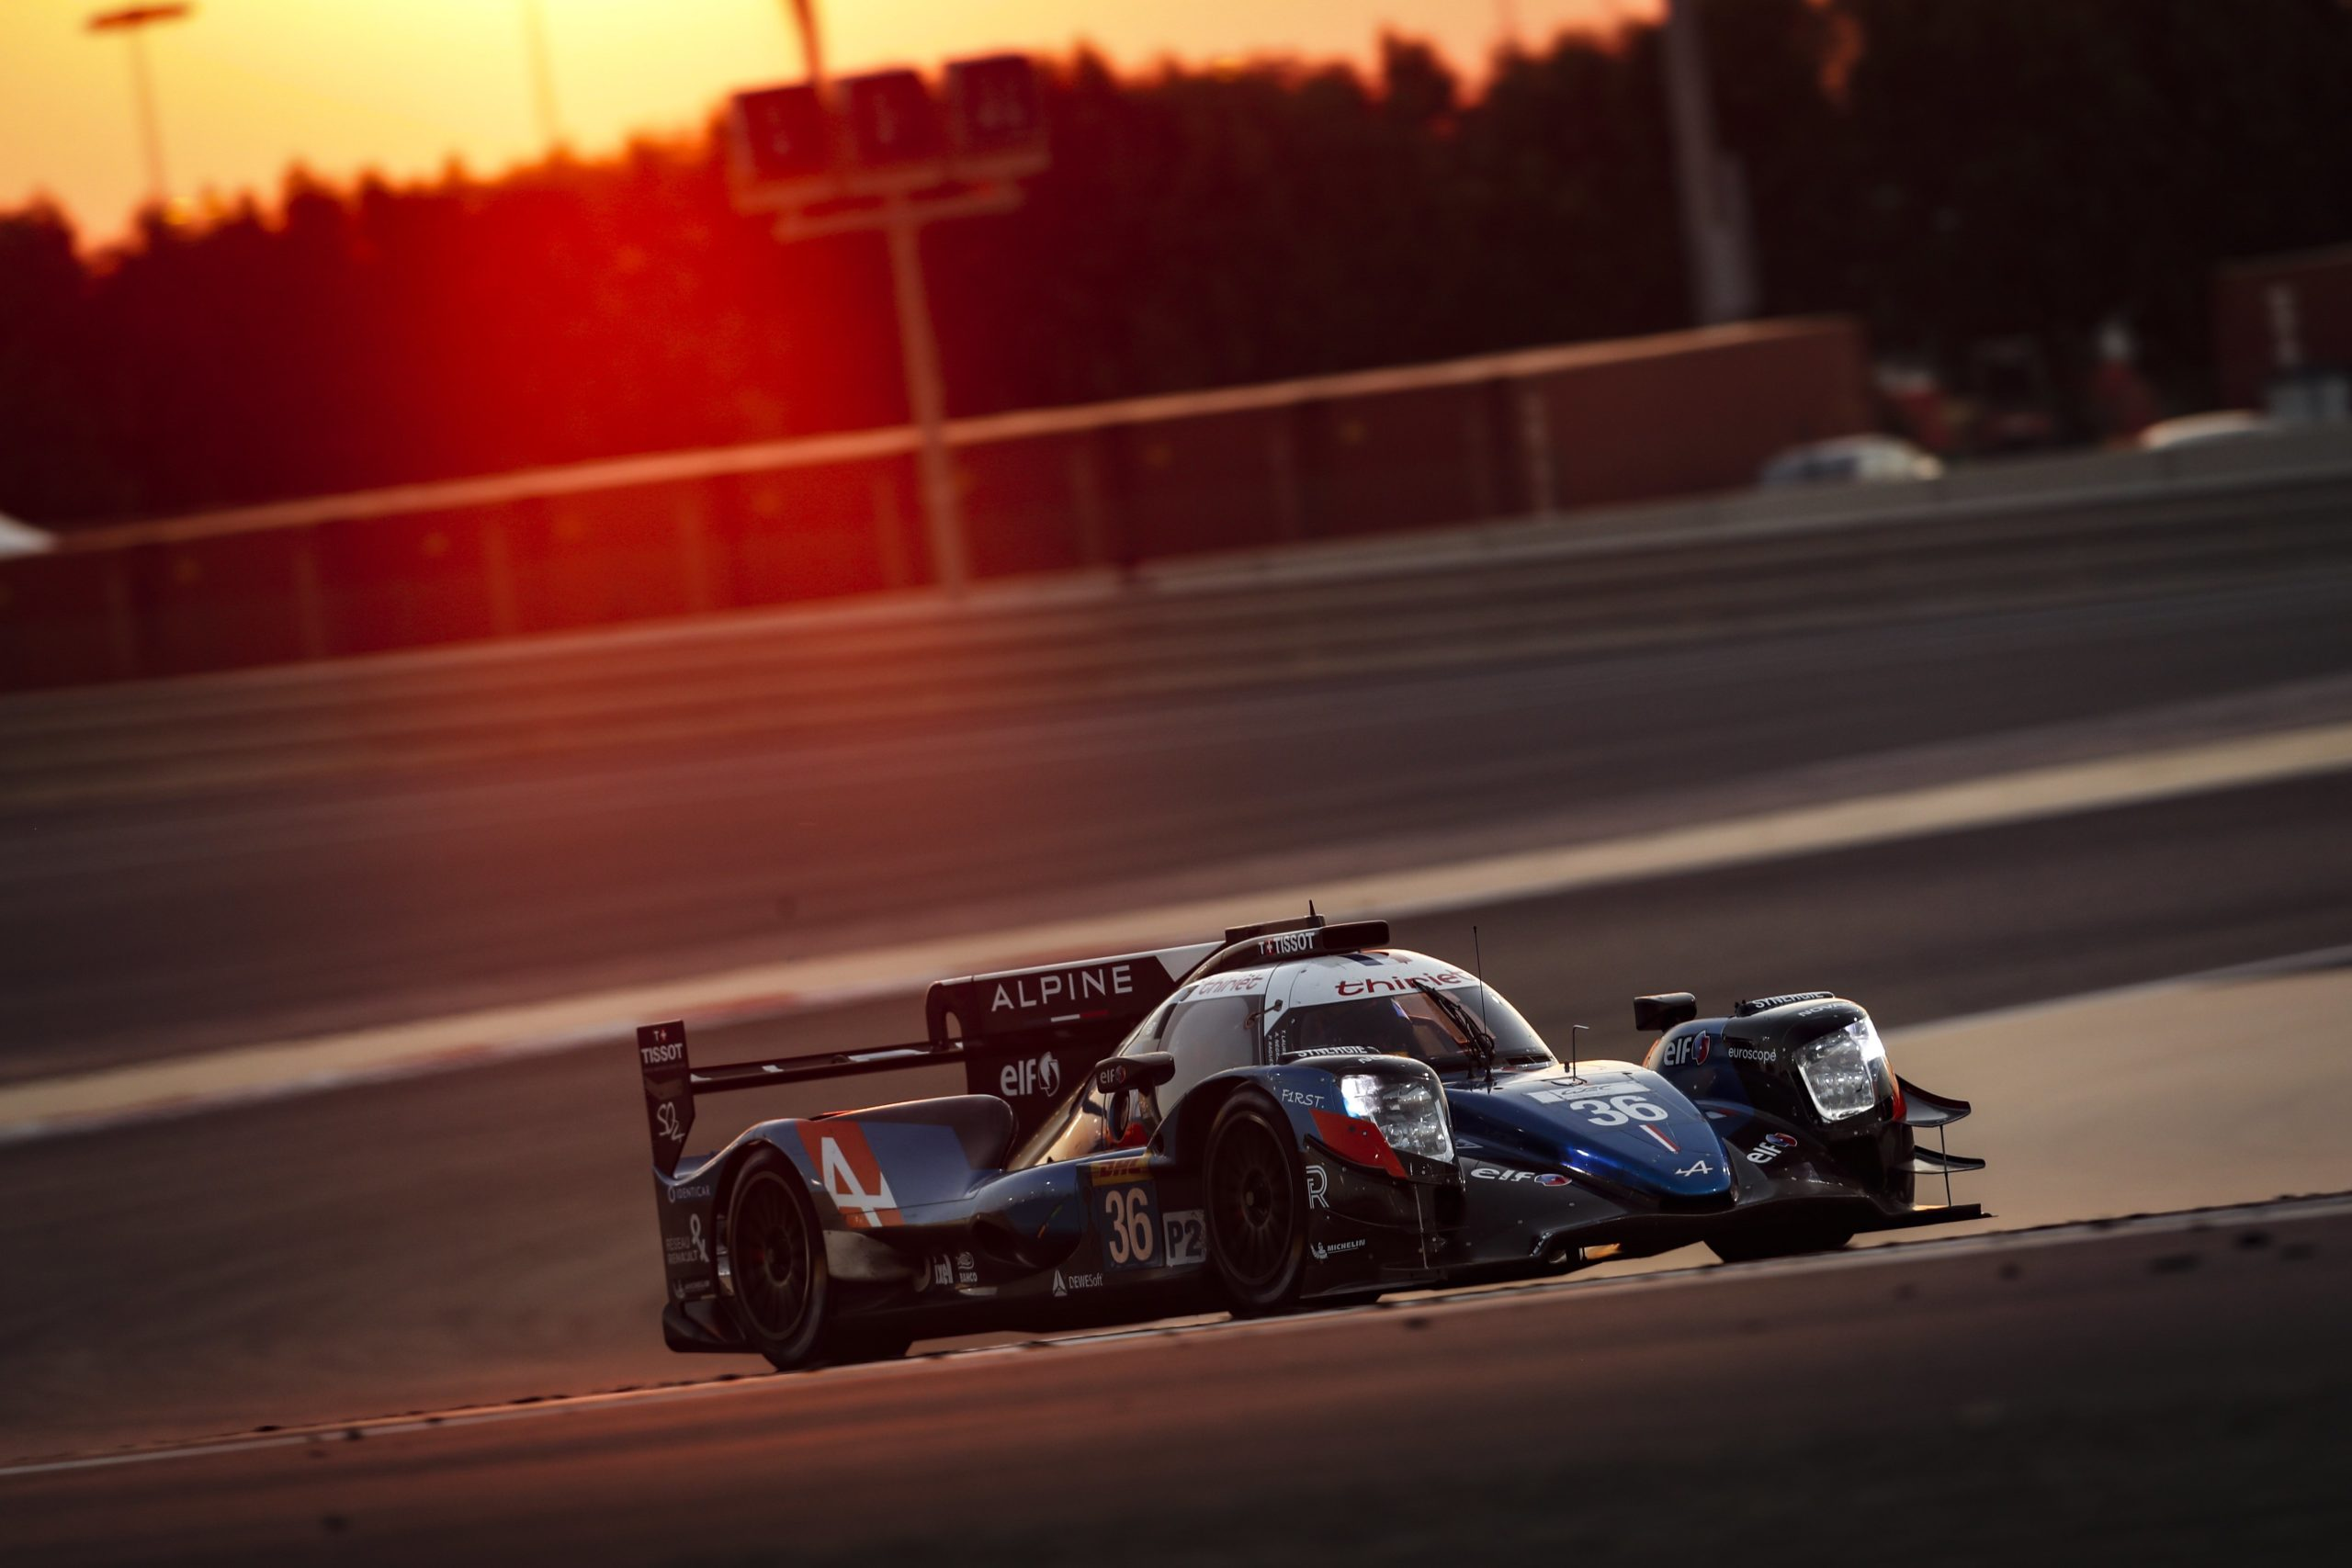 PIERRE RAGUES WRAPS UP 2019/20 FIA WEC SEASON WITH FIFTH IN BAHRAIN